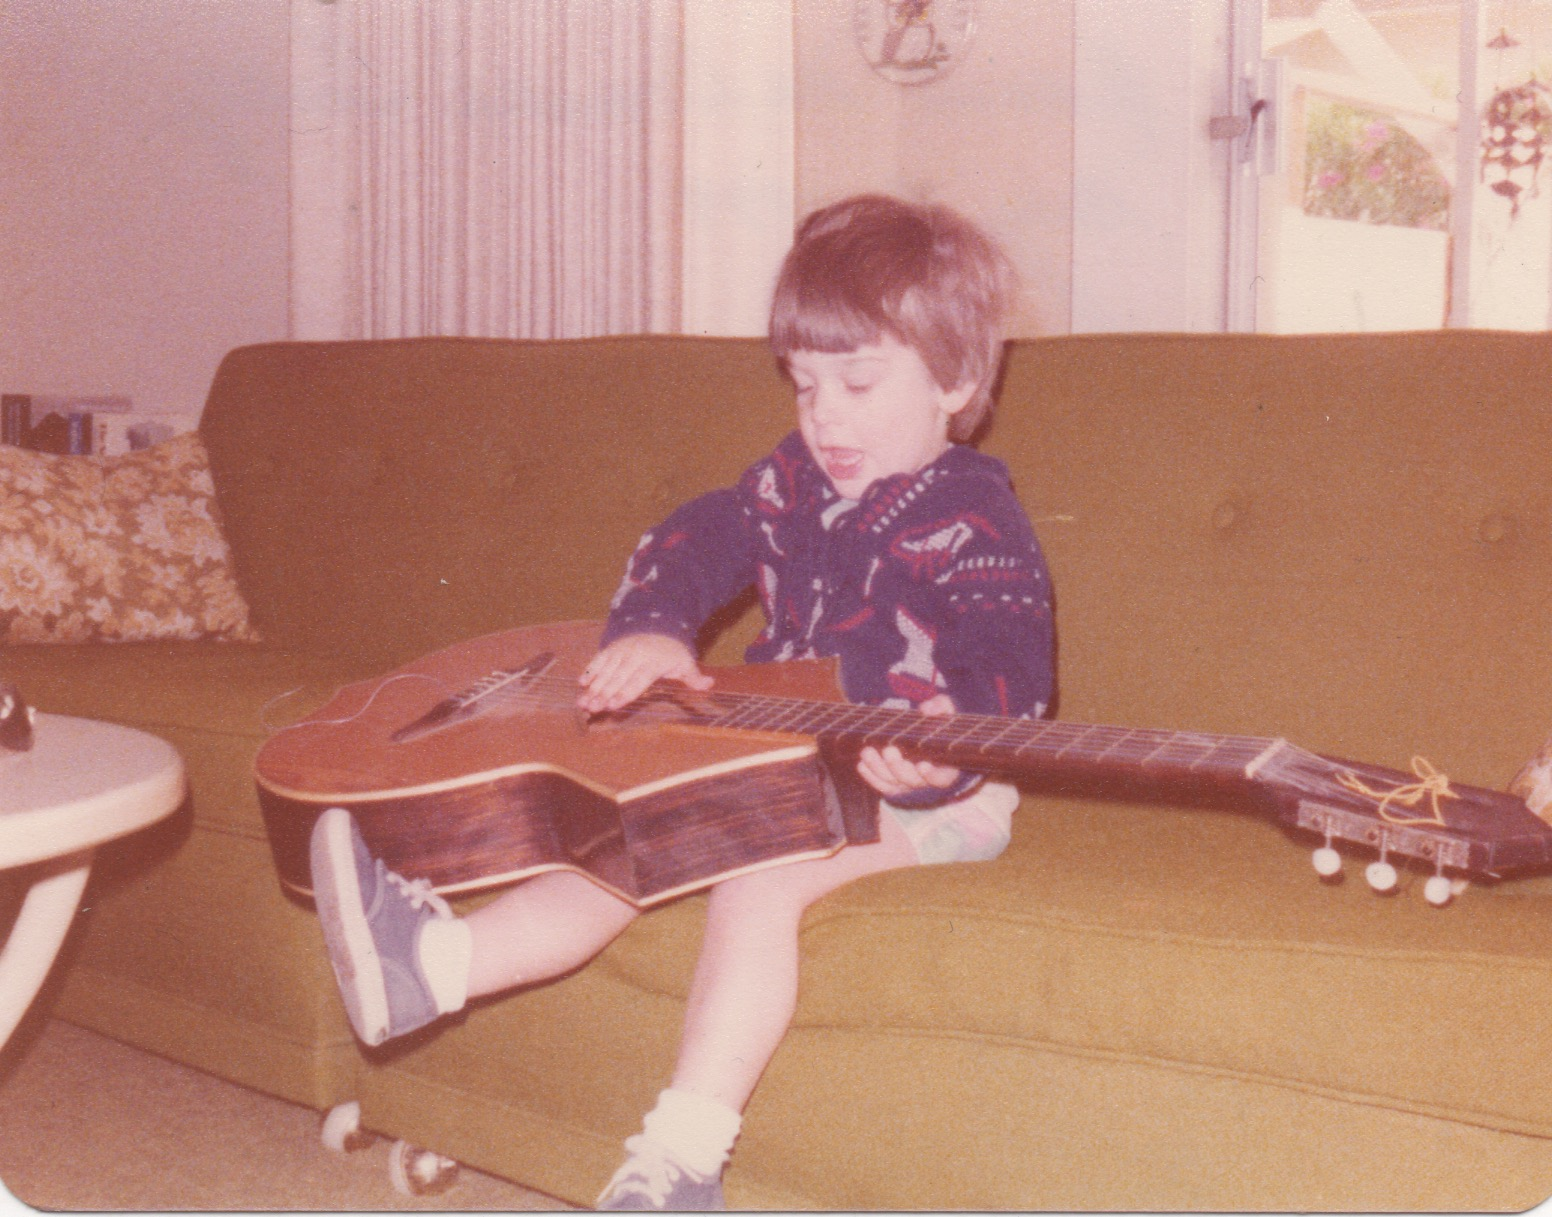 1977 - Palm Springs, CA. My grandmother must have had this guitar in her house, and at age 2 this is probably the first time I ever touched one.